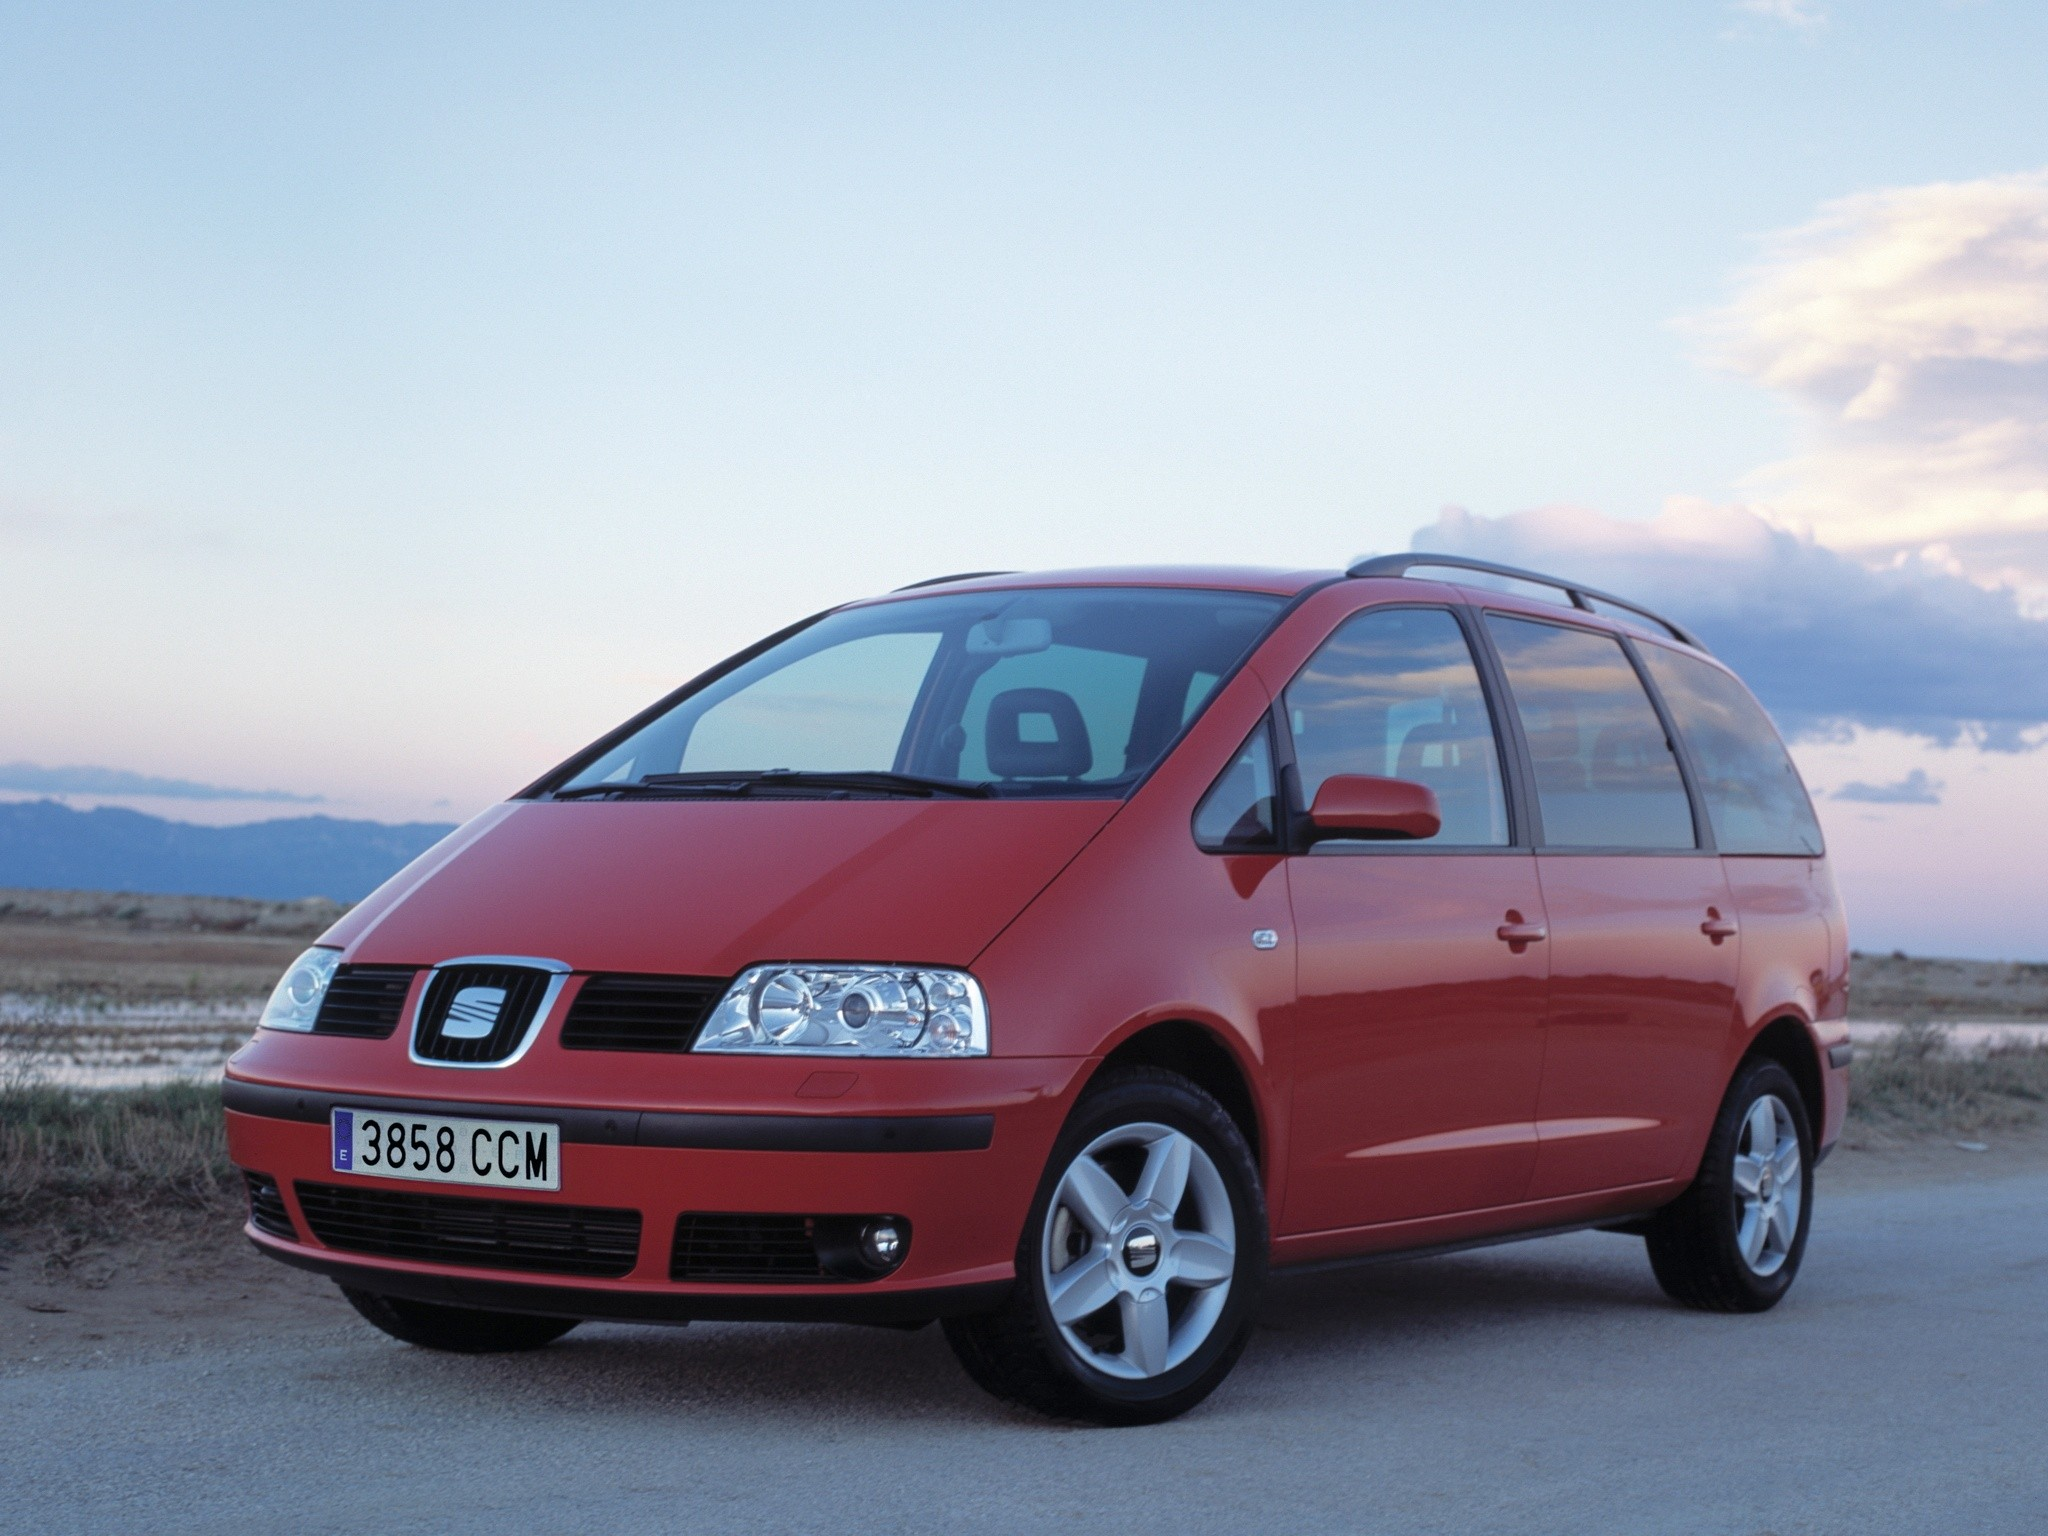 seat alhambra specs 2000 2001 2002 2003 2004 2005. Black Bedroom Furniture Sets. Home Design Ideas